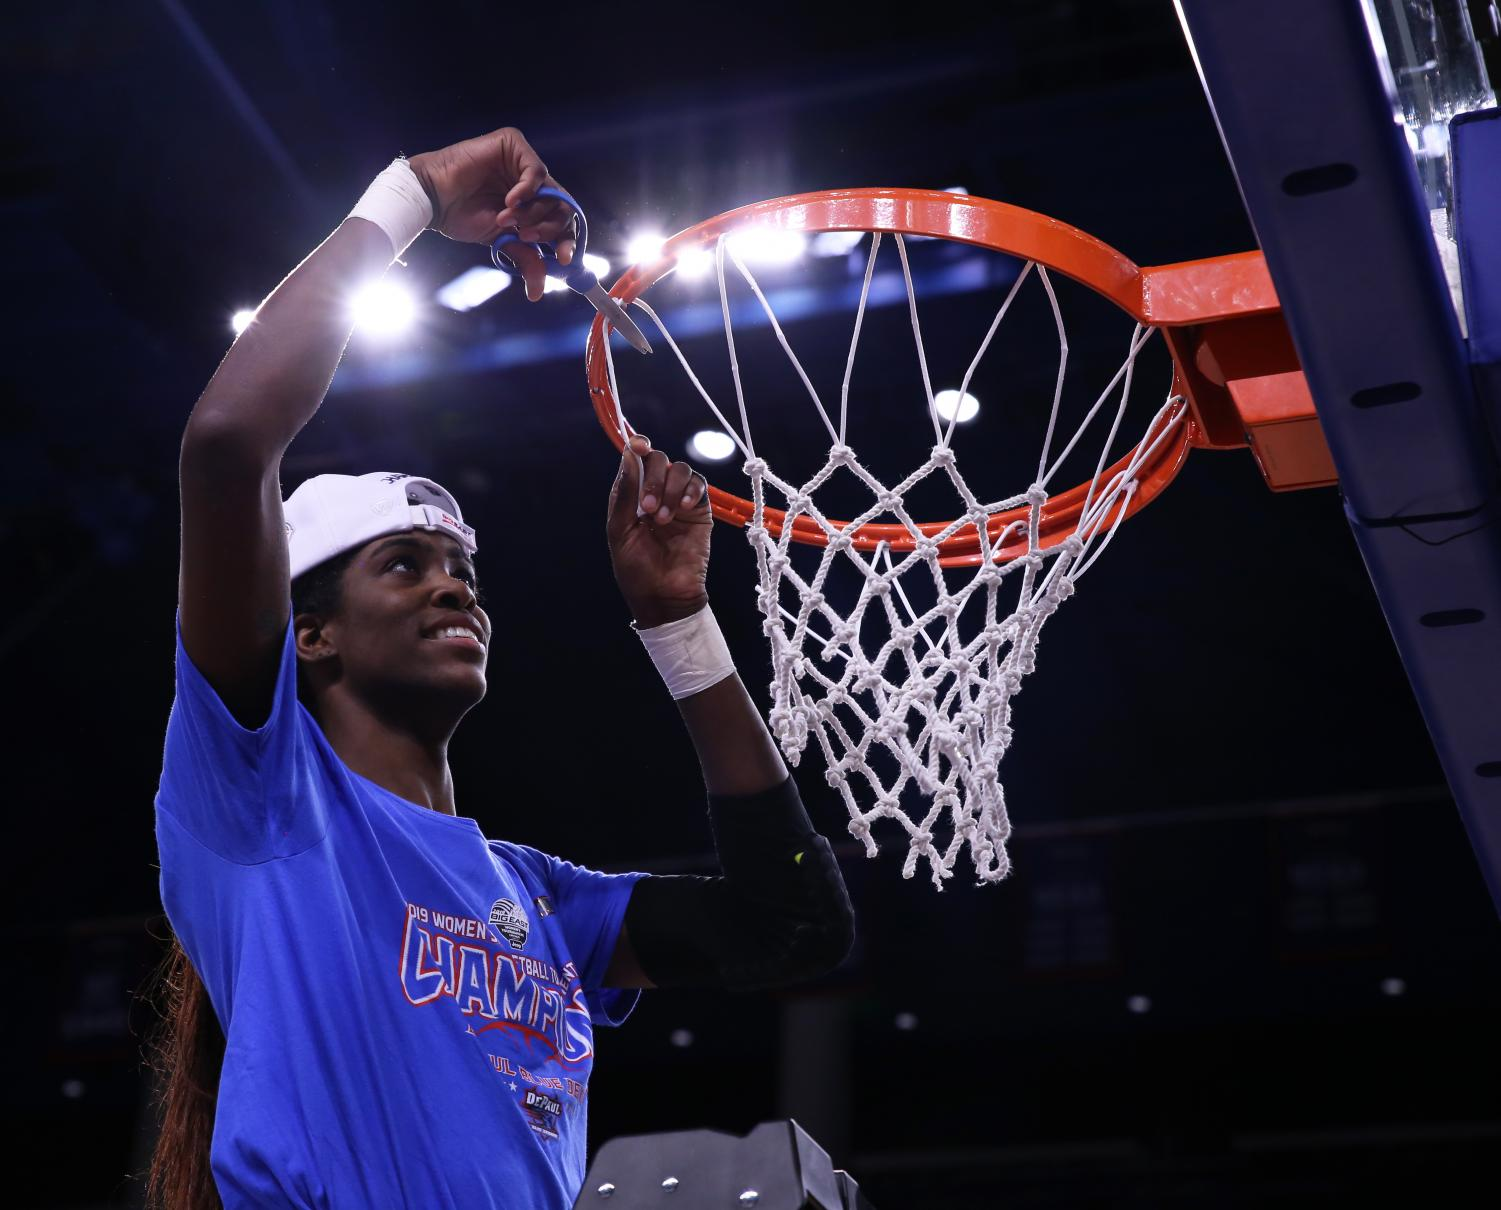 DePaul junior forward Chante Stonewall cuts down a piece of the net during DePaul's postgame celebration after defeating Marquette in Tuesday night's Big East Tournament championship game at Wintrust Arena. Alexa Sandler | The DePaulia